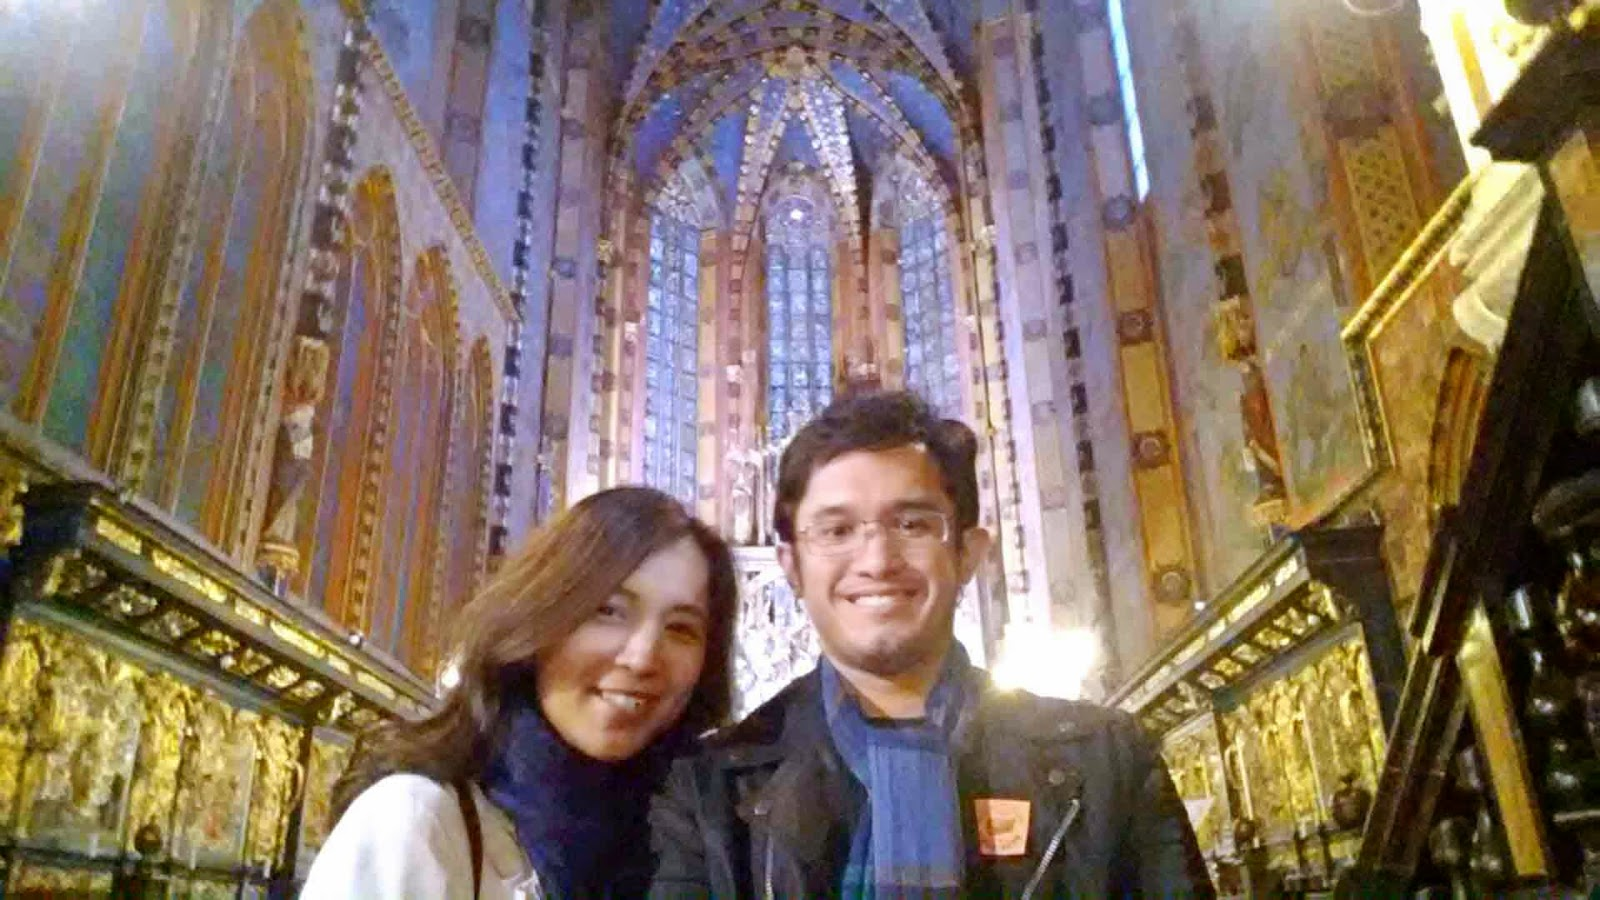 Selfie at St. Mary's Basilica Altar